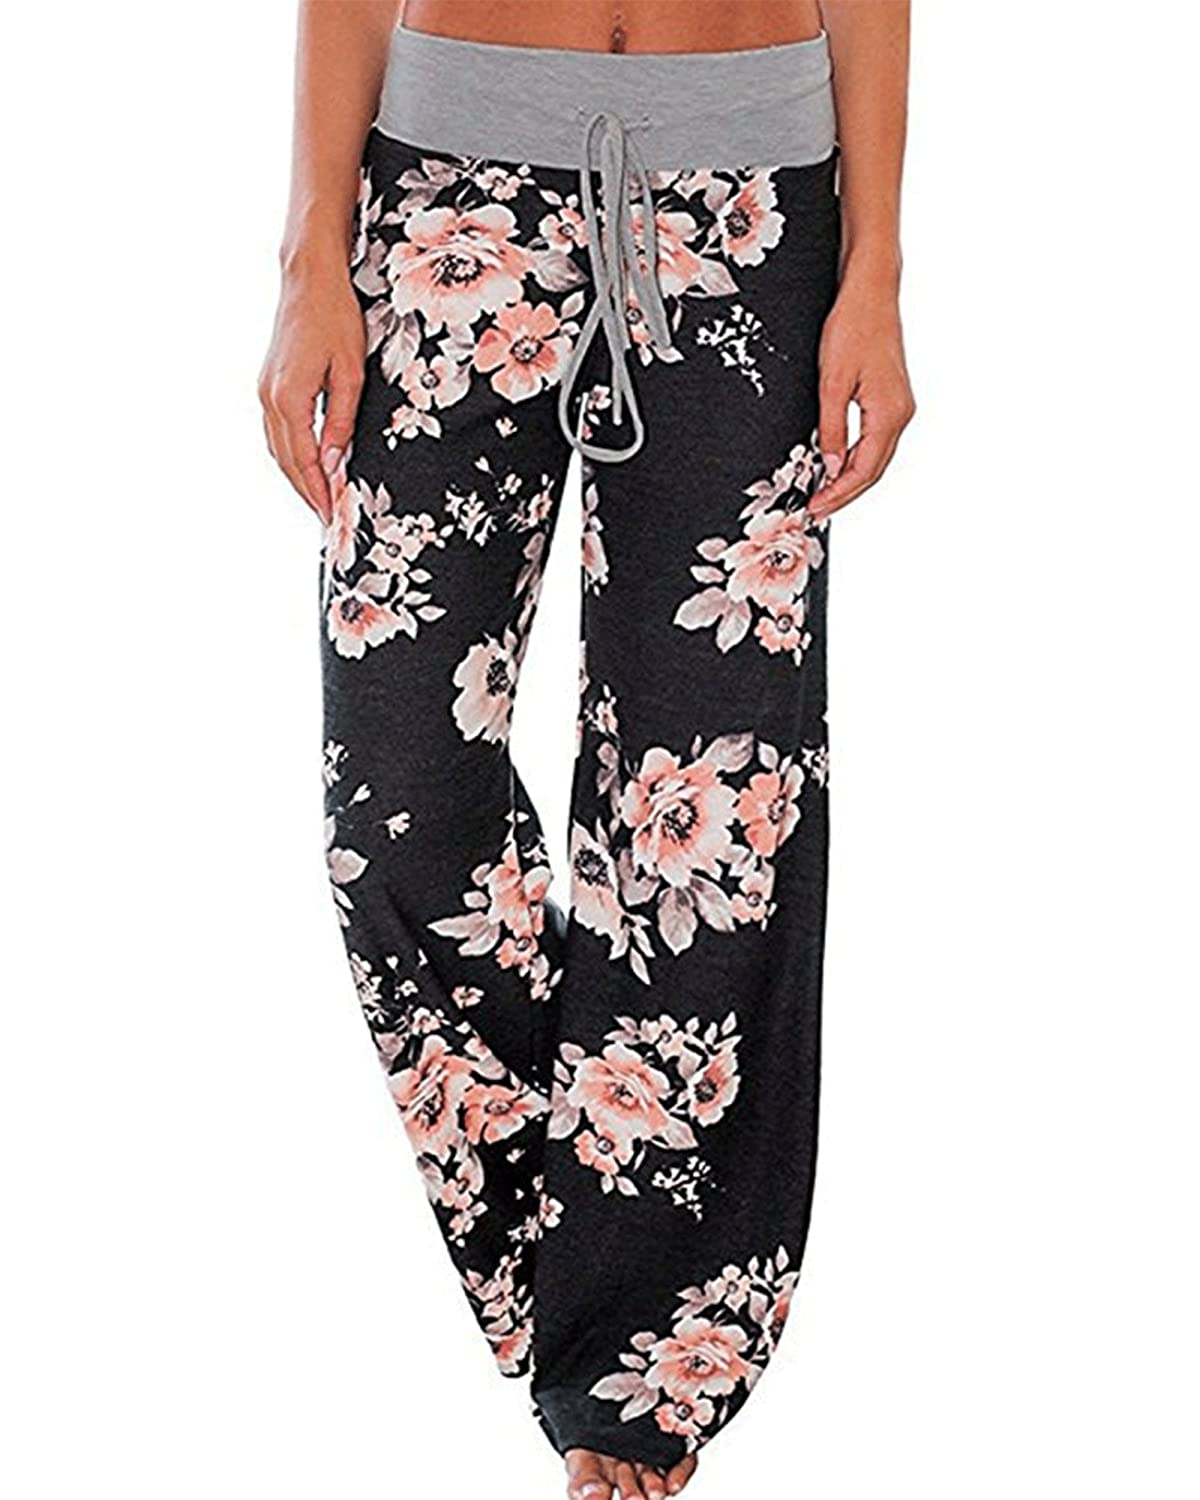 c530155512 Features: Hight waist,adjustable waistband,wide leg, flora print,lounge  pants, cozy pants, pajama pants, baggy pants, yoga pants, beach pants, ...